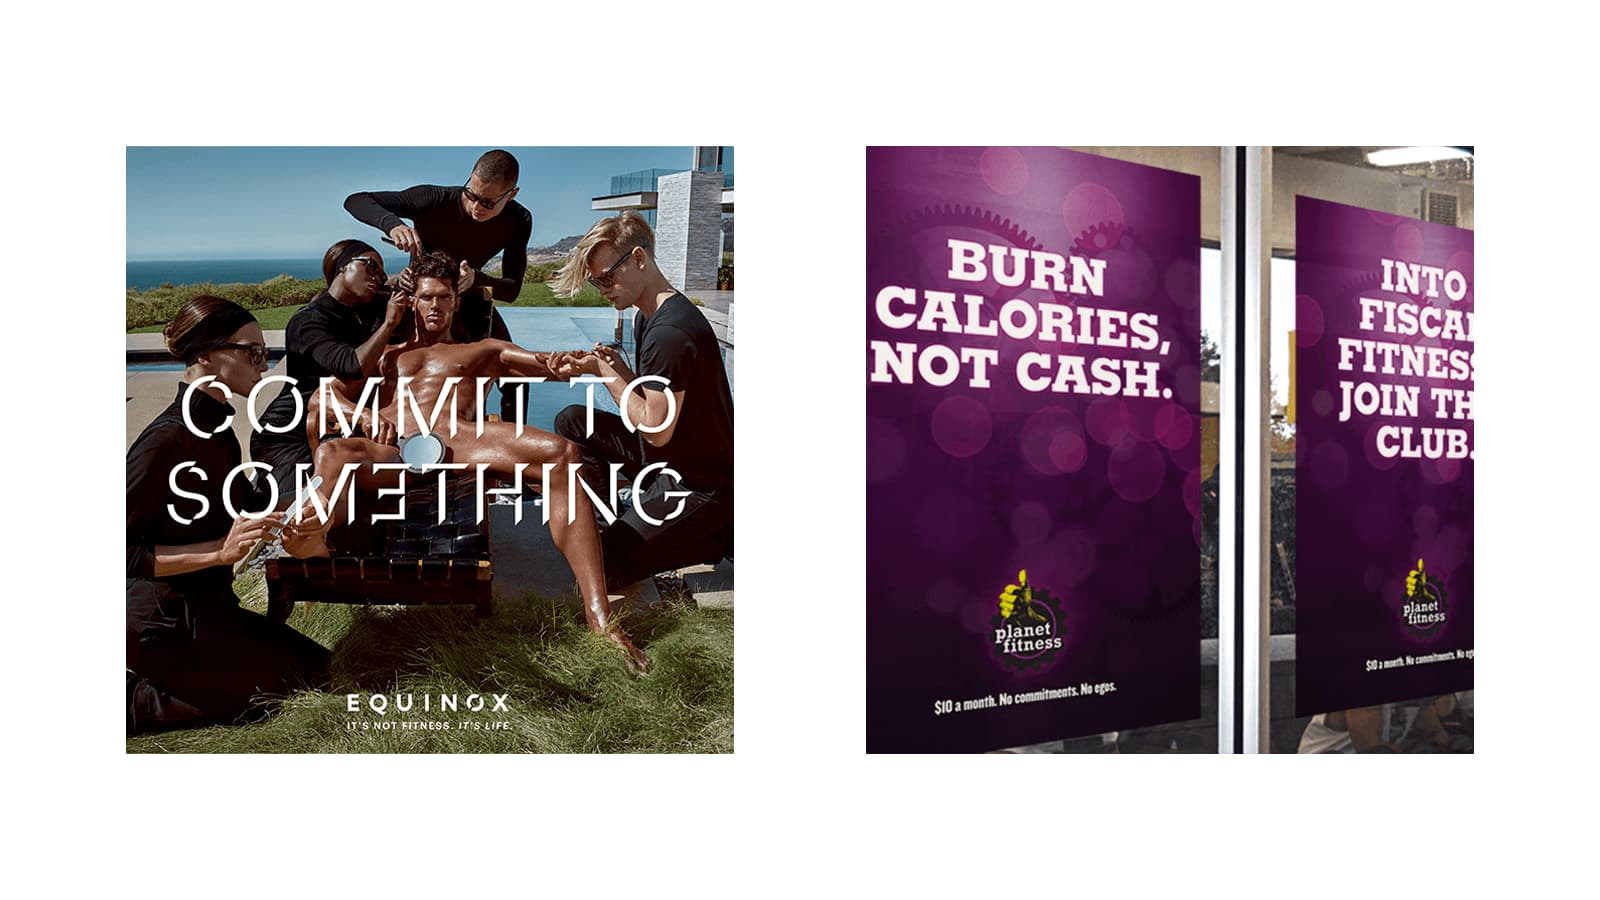 Equinox ads juxtaposed to Planet Fitness ads